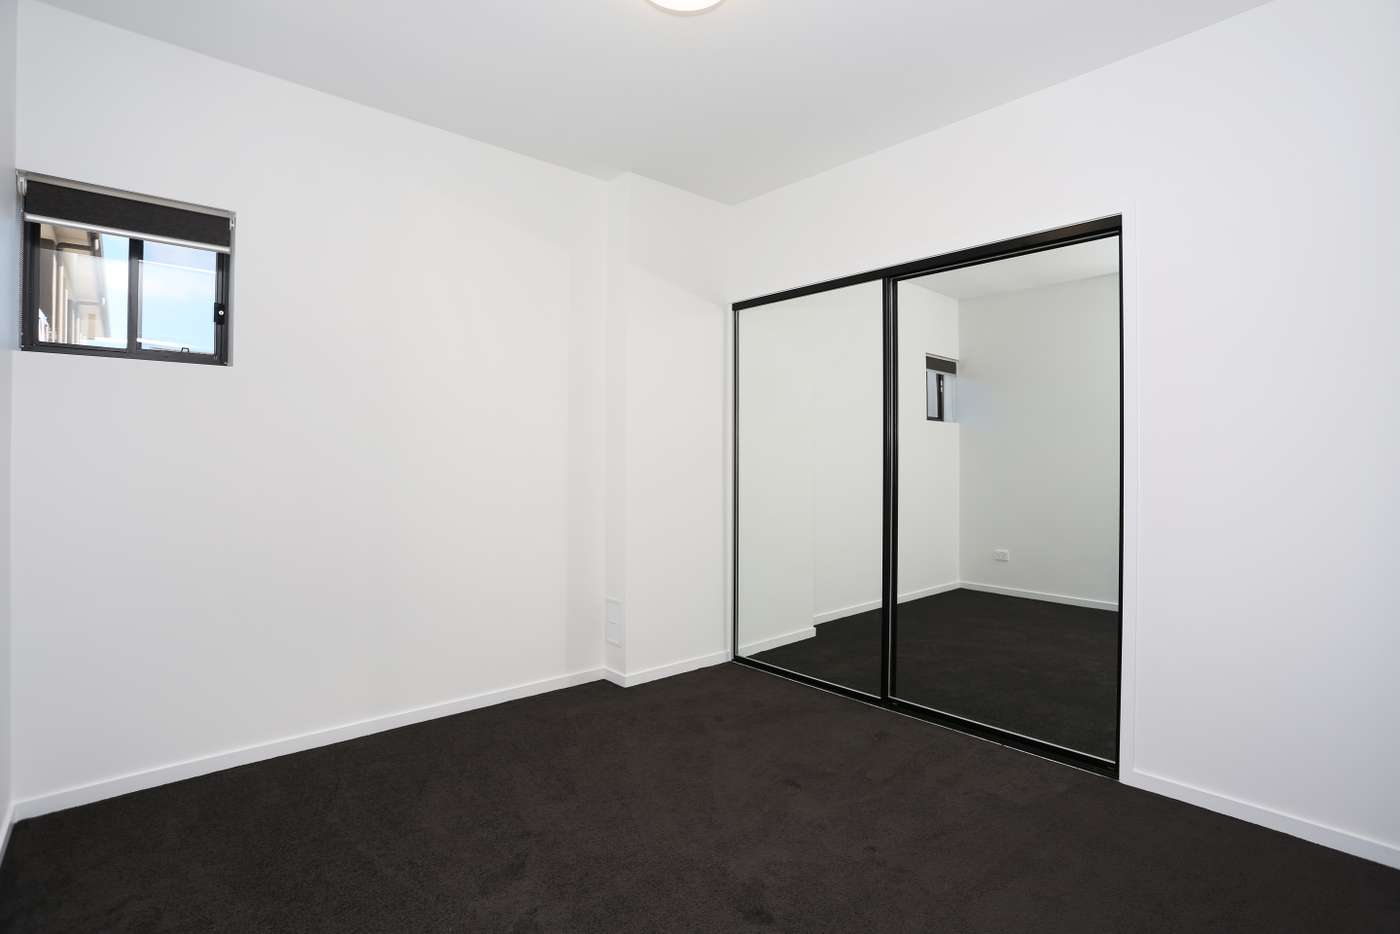 Sixth view of Homely unit listing, 6/7 Livingstone Street, Yeerongpilly QLD 4105